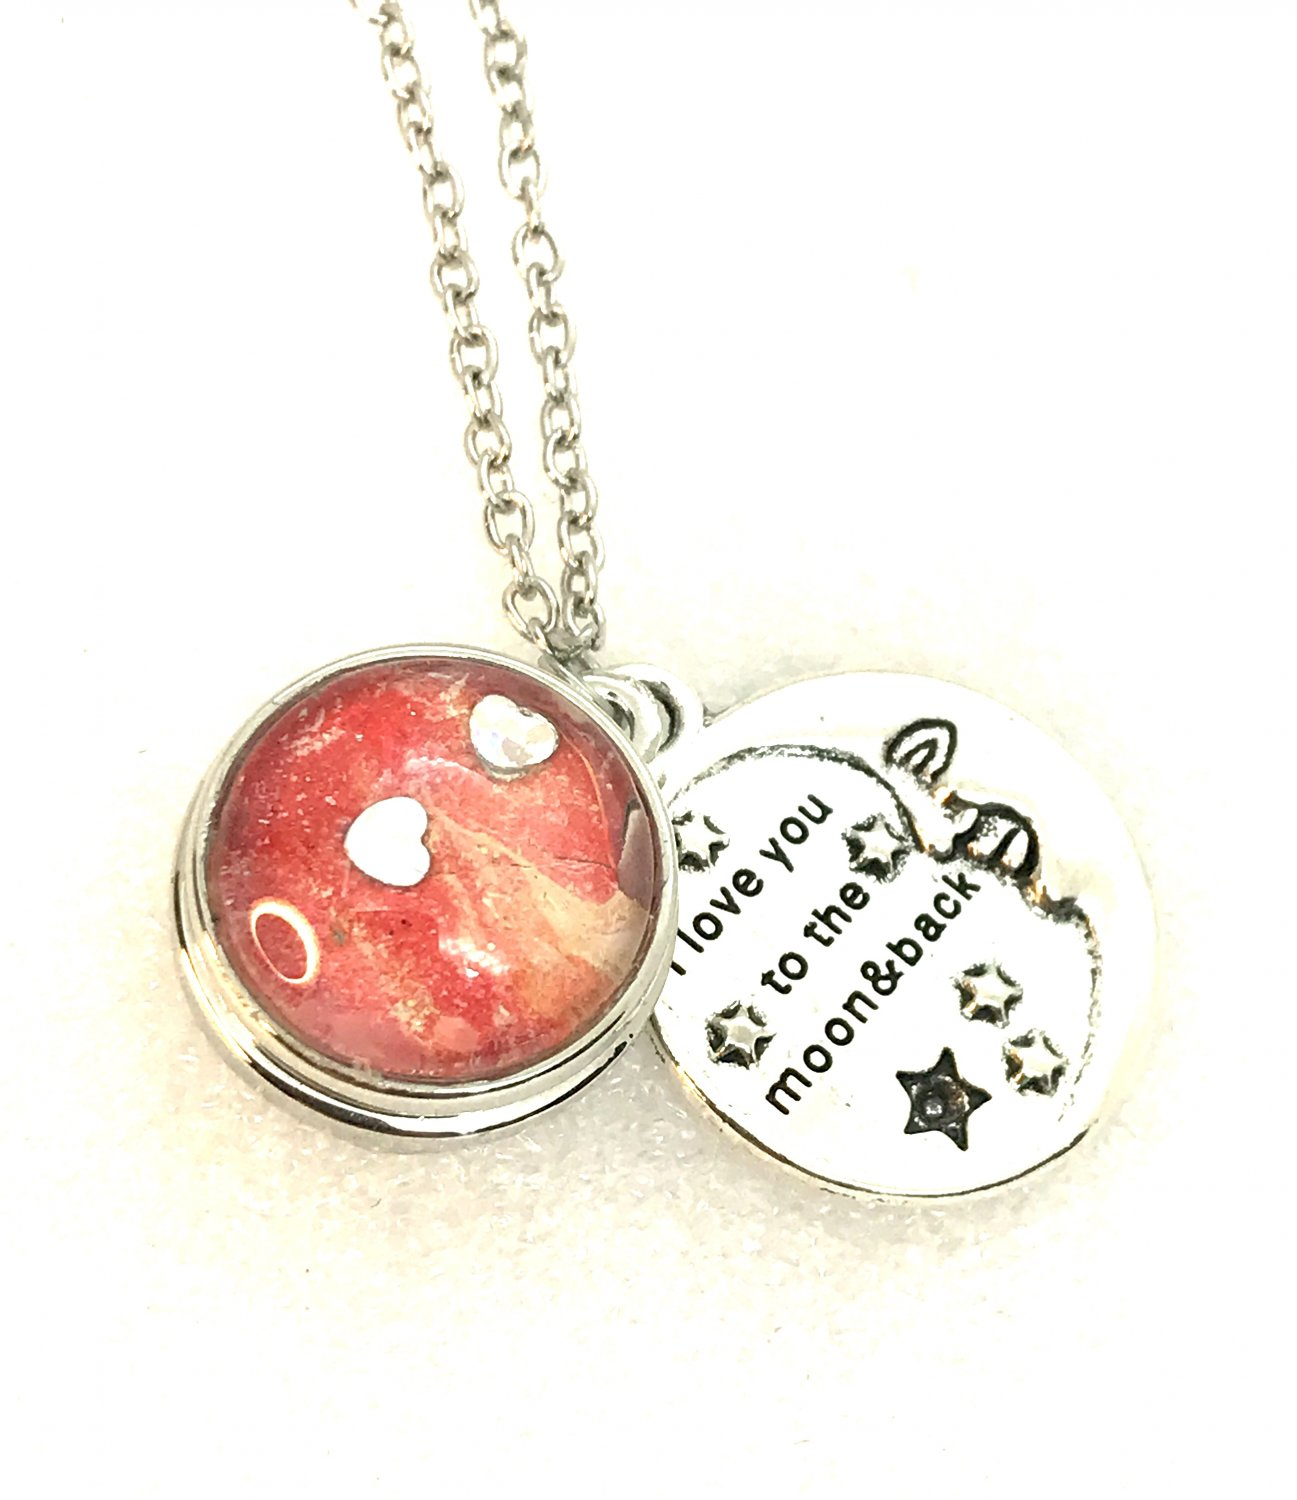 Snap Necklace 18-20mm  Hand Painted  Love you  to the moon and back Moon  Stars